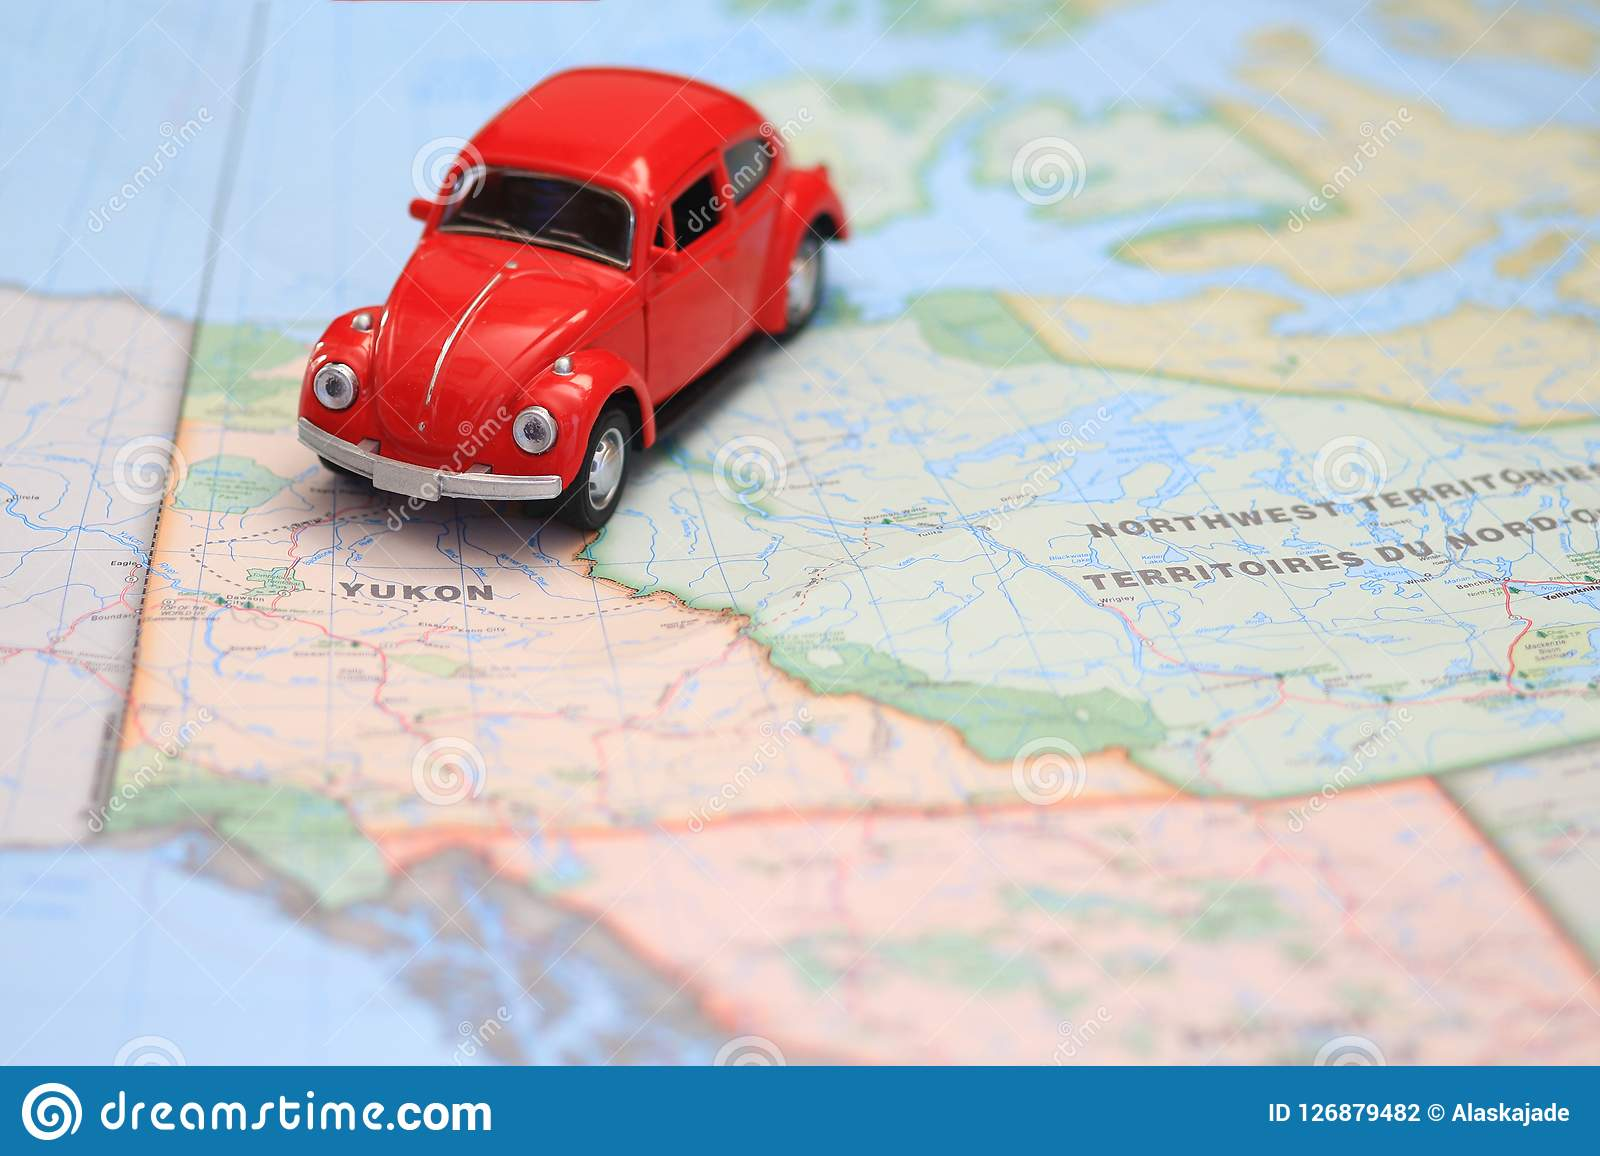 Canada Map Driving Miniature Car Driving On A Map Of The Yukon Canada Stock Photo